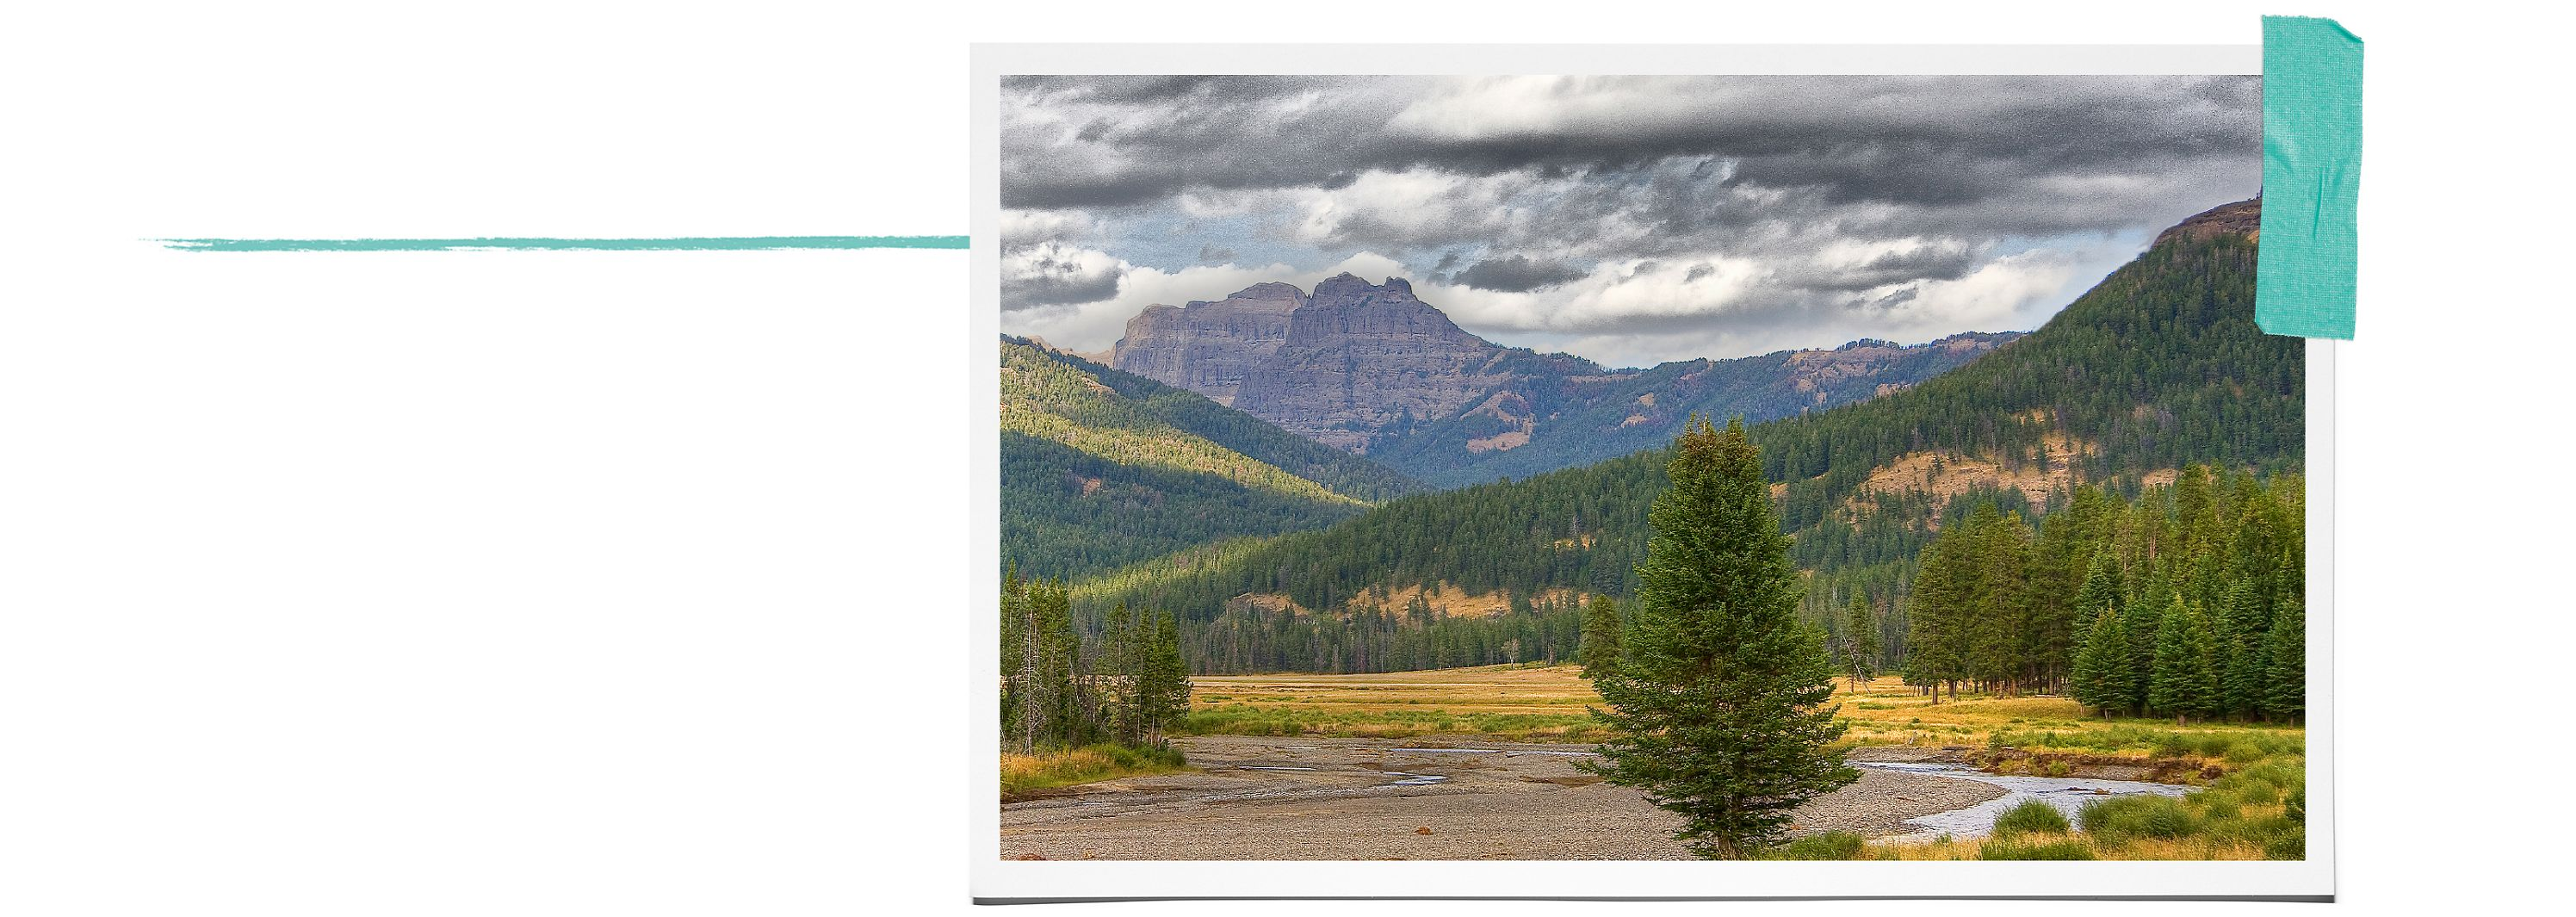 Tiffany & Co. and Yellowstone National Park